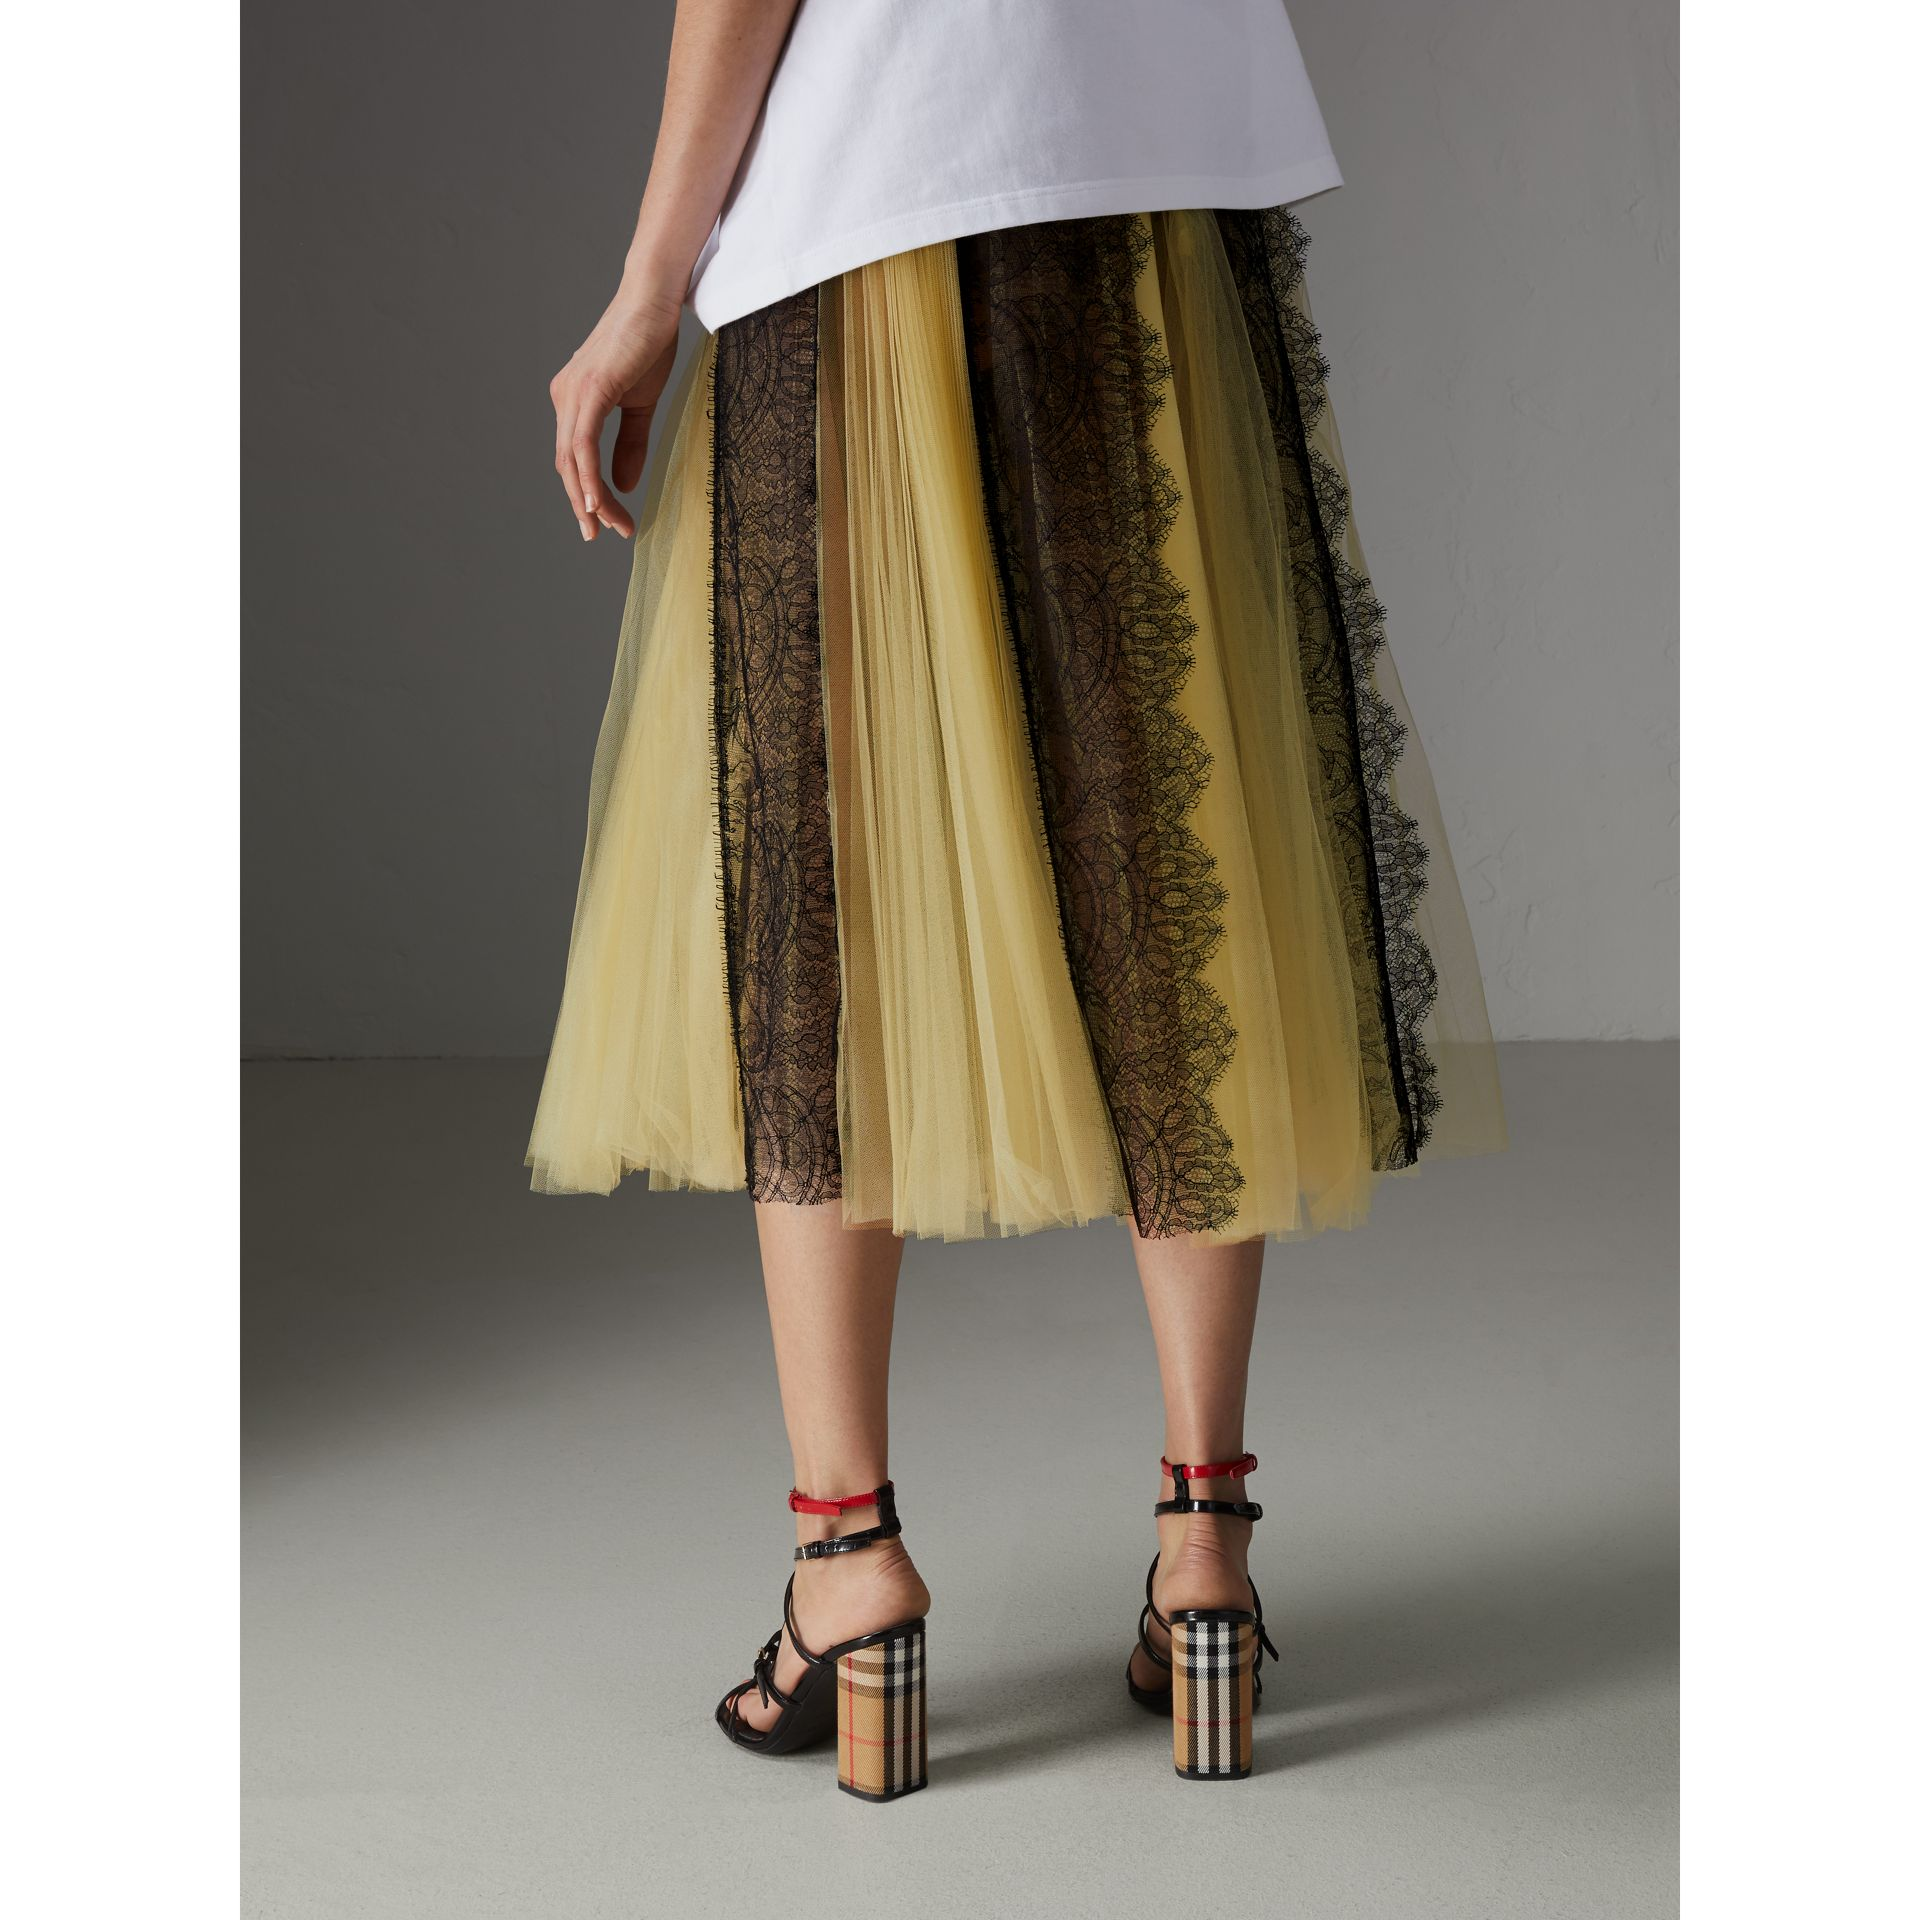 Lace Panel Pleated Tulle Skirt in Yellow - Women | Burberry - gallery image 2